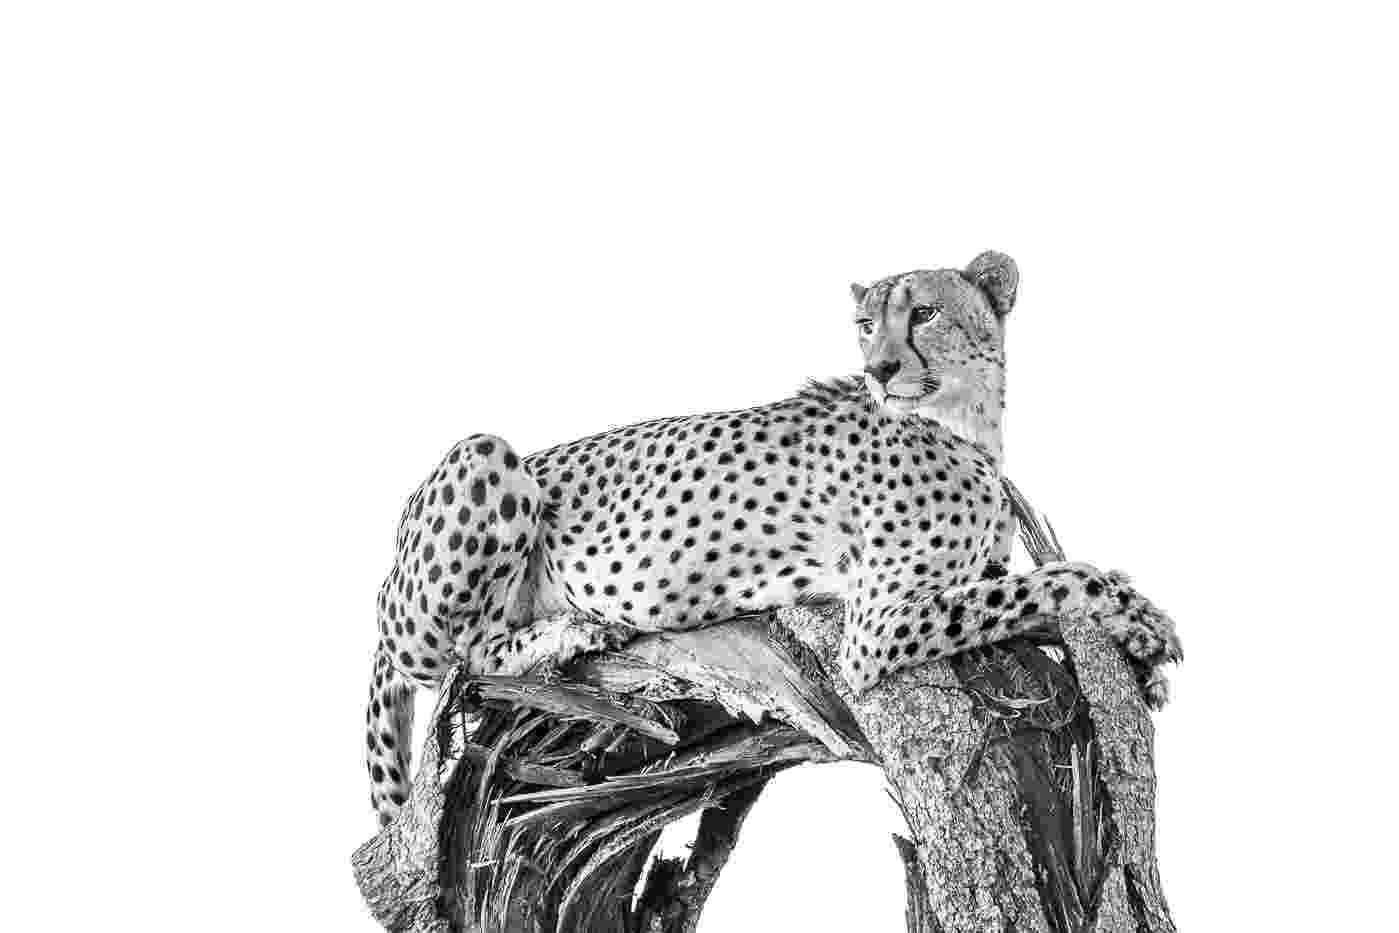 picture of a cheetah 491 best cheetahs images on pinterest big cats animal cheetah picture a of